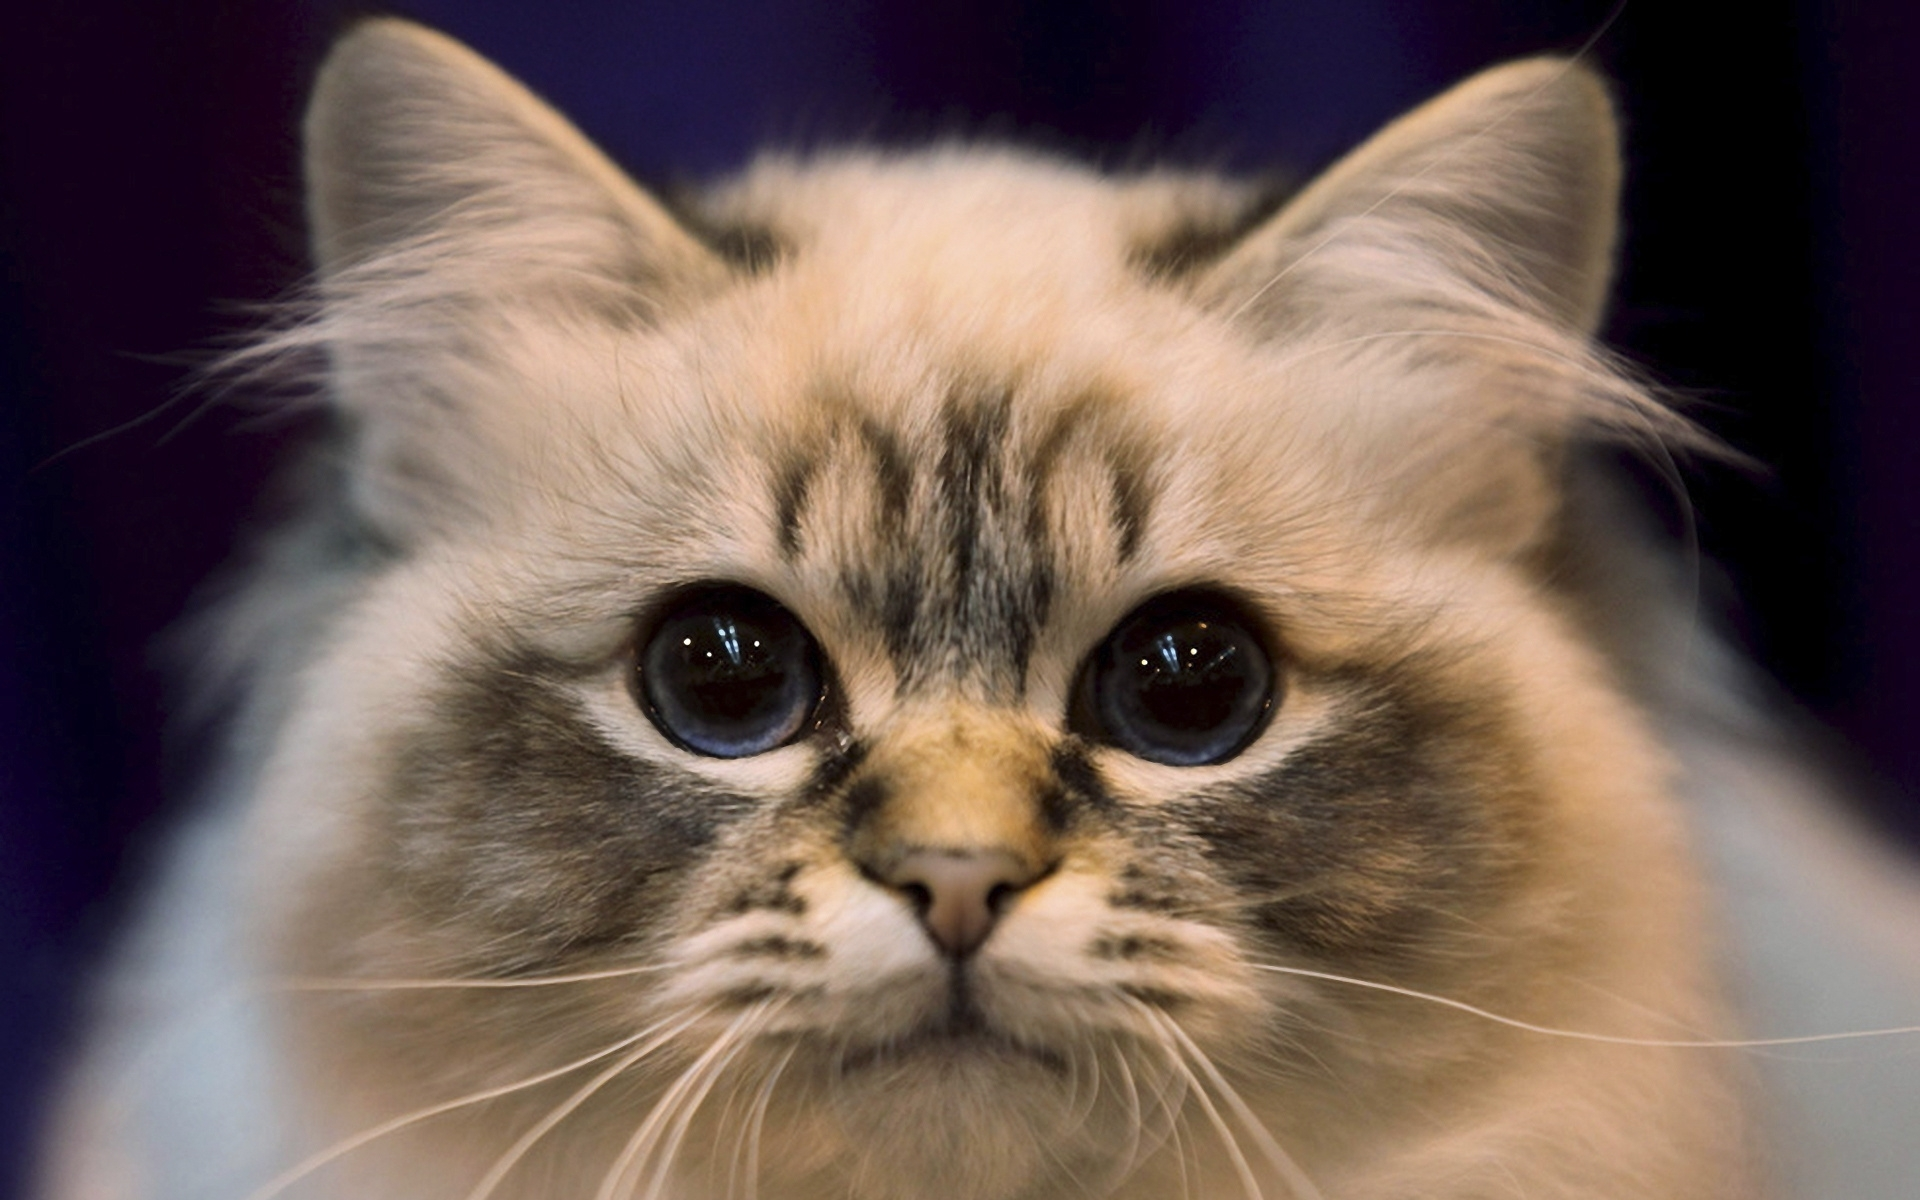 49016 download wallpaper Animals, Cats screensavers and pictures for free